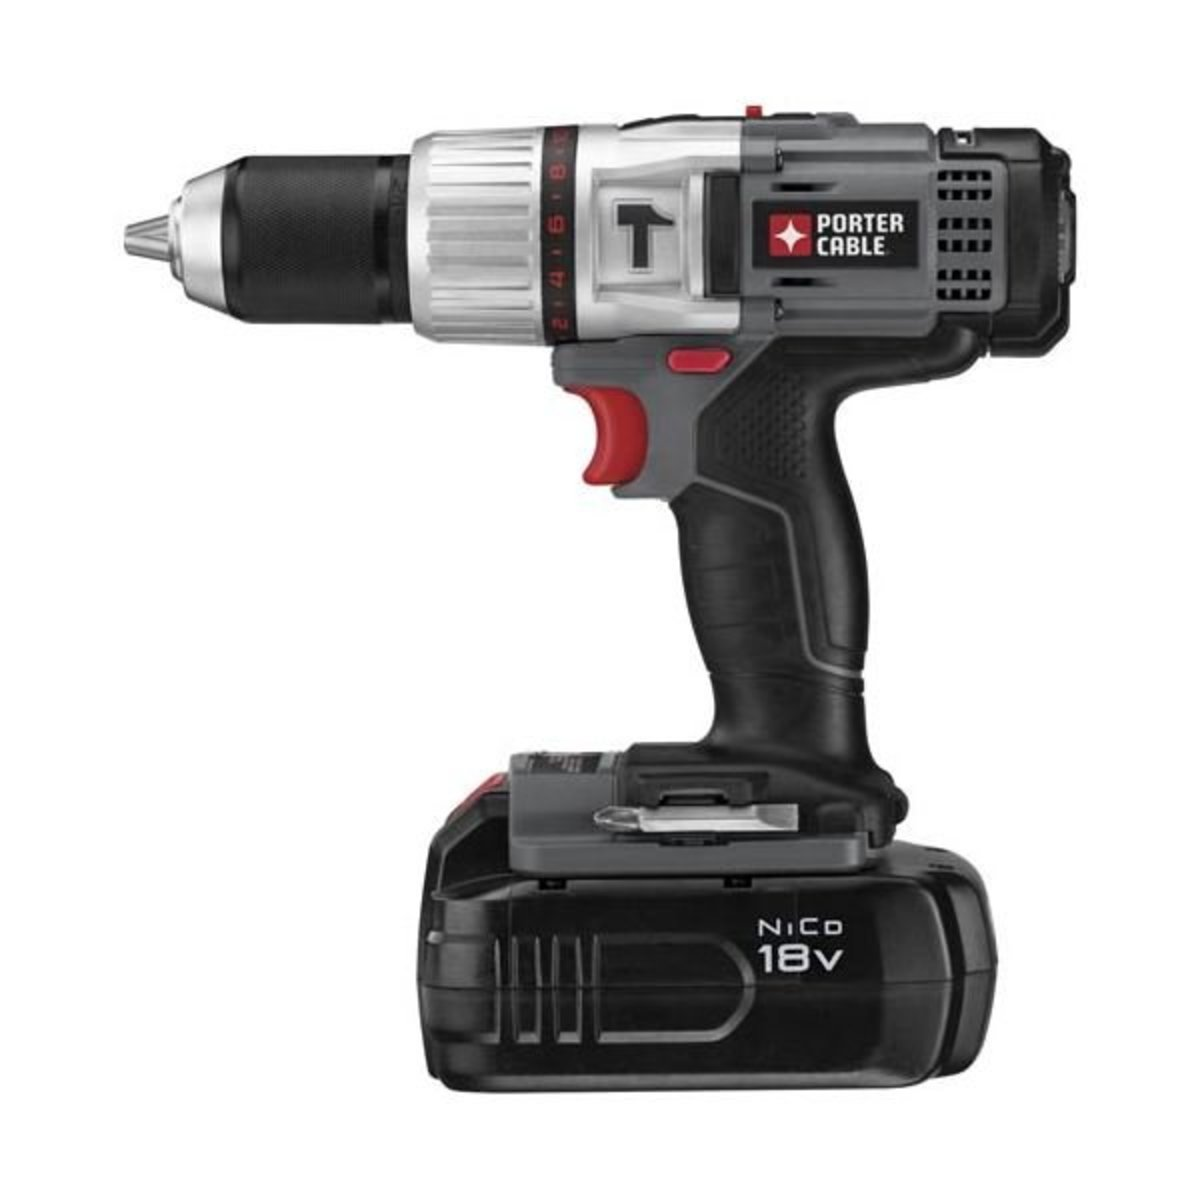 """View a Larger Image of 18V NiCD 1/2"""" Compact Hammer Drill Kit, Model PC180CHDK-2"""